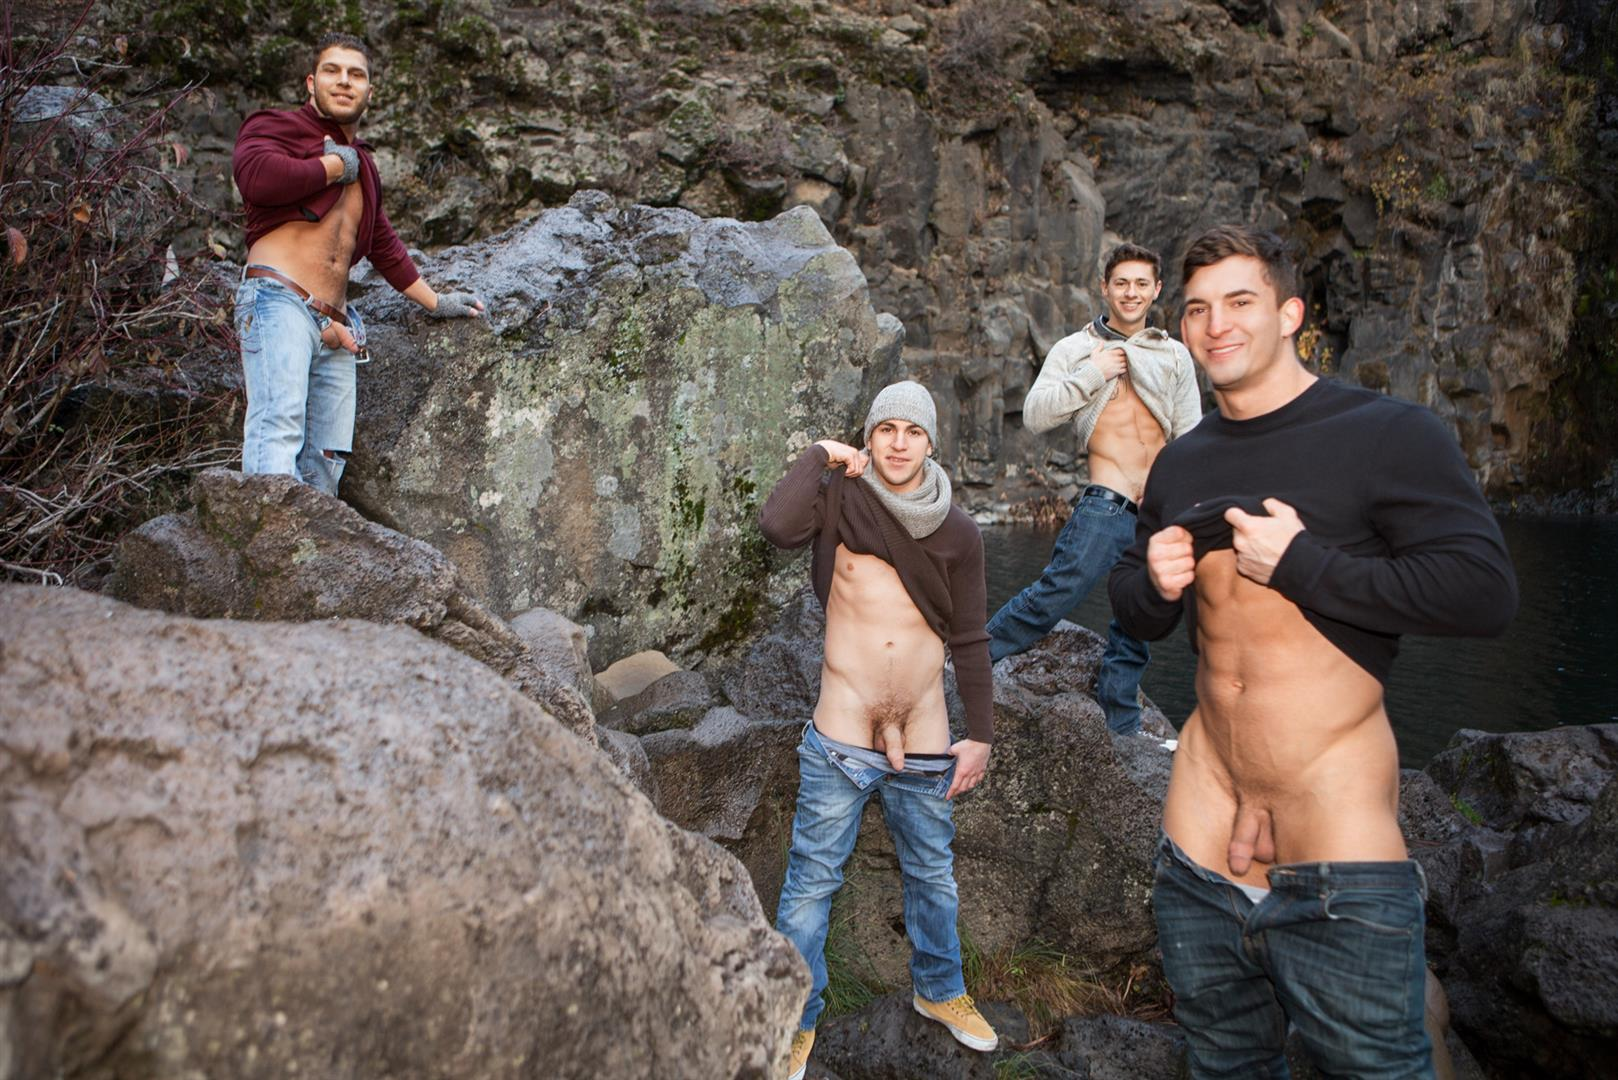 Sean Cody Winter Getaway Day 4 Big Dick Hunks Fucking Bareback Amateur Gay Porn 03 Sean Cody Takes The Boys On A 8 Day Bareback Winter Getaway